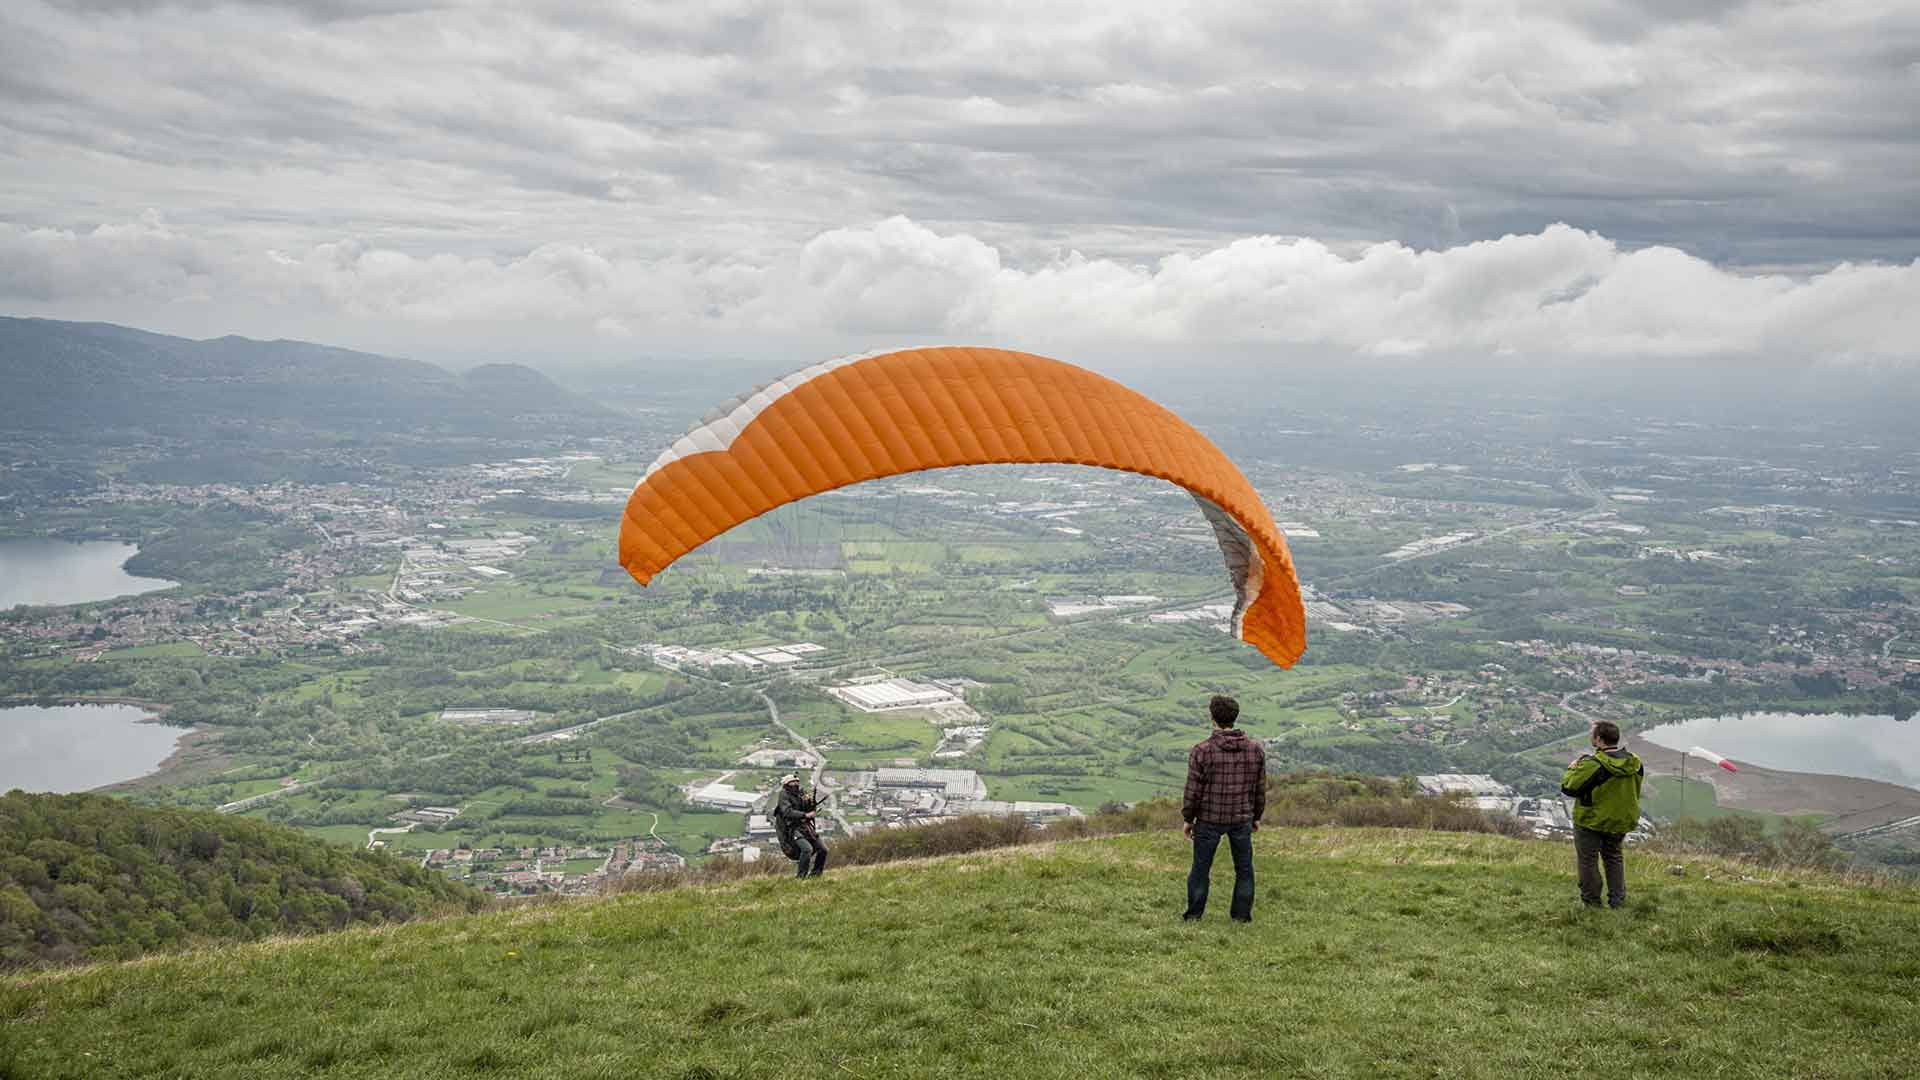 Conquest the sky of Lake Como and fly soft and silence in the clouds